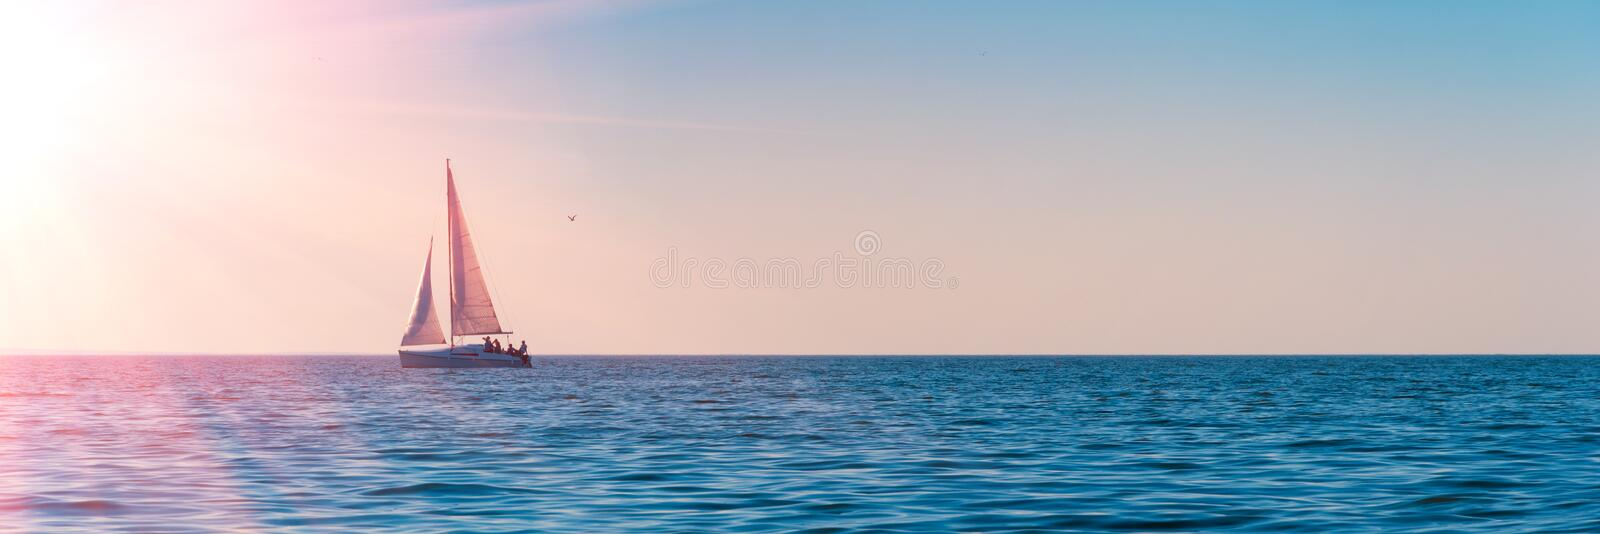 Banner 3:1. Sailboat in the sea in the evening sunlight over sky background. Luxury summer adventure or active vacation concept. stock image